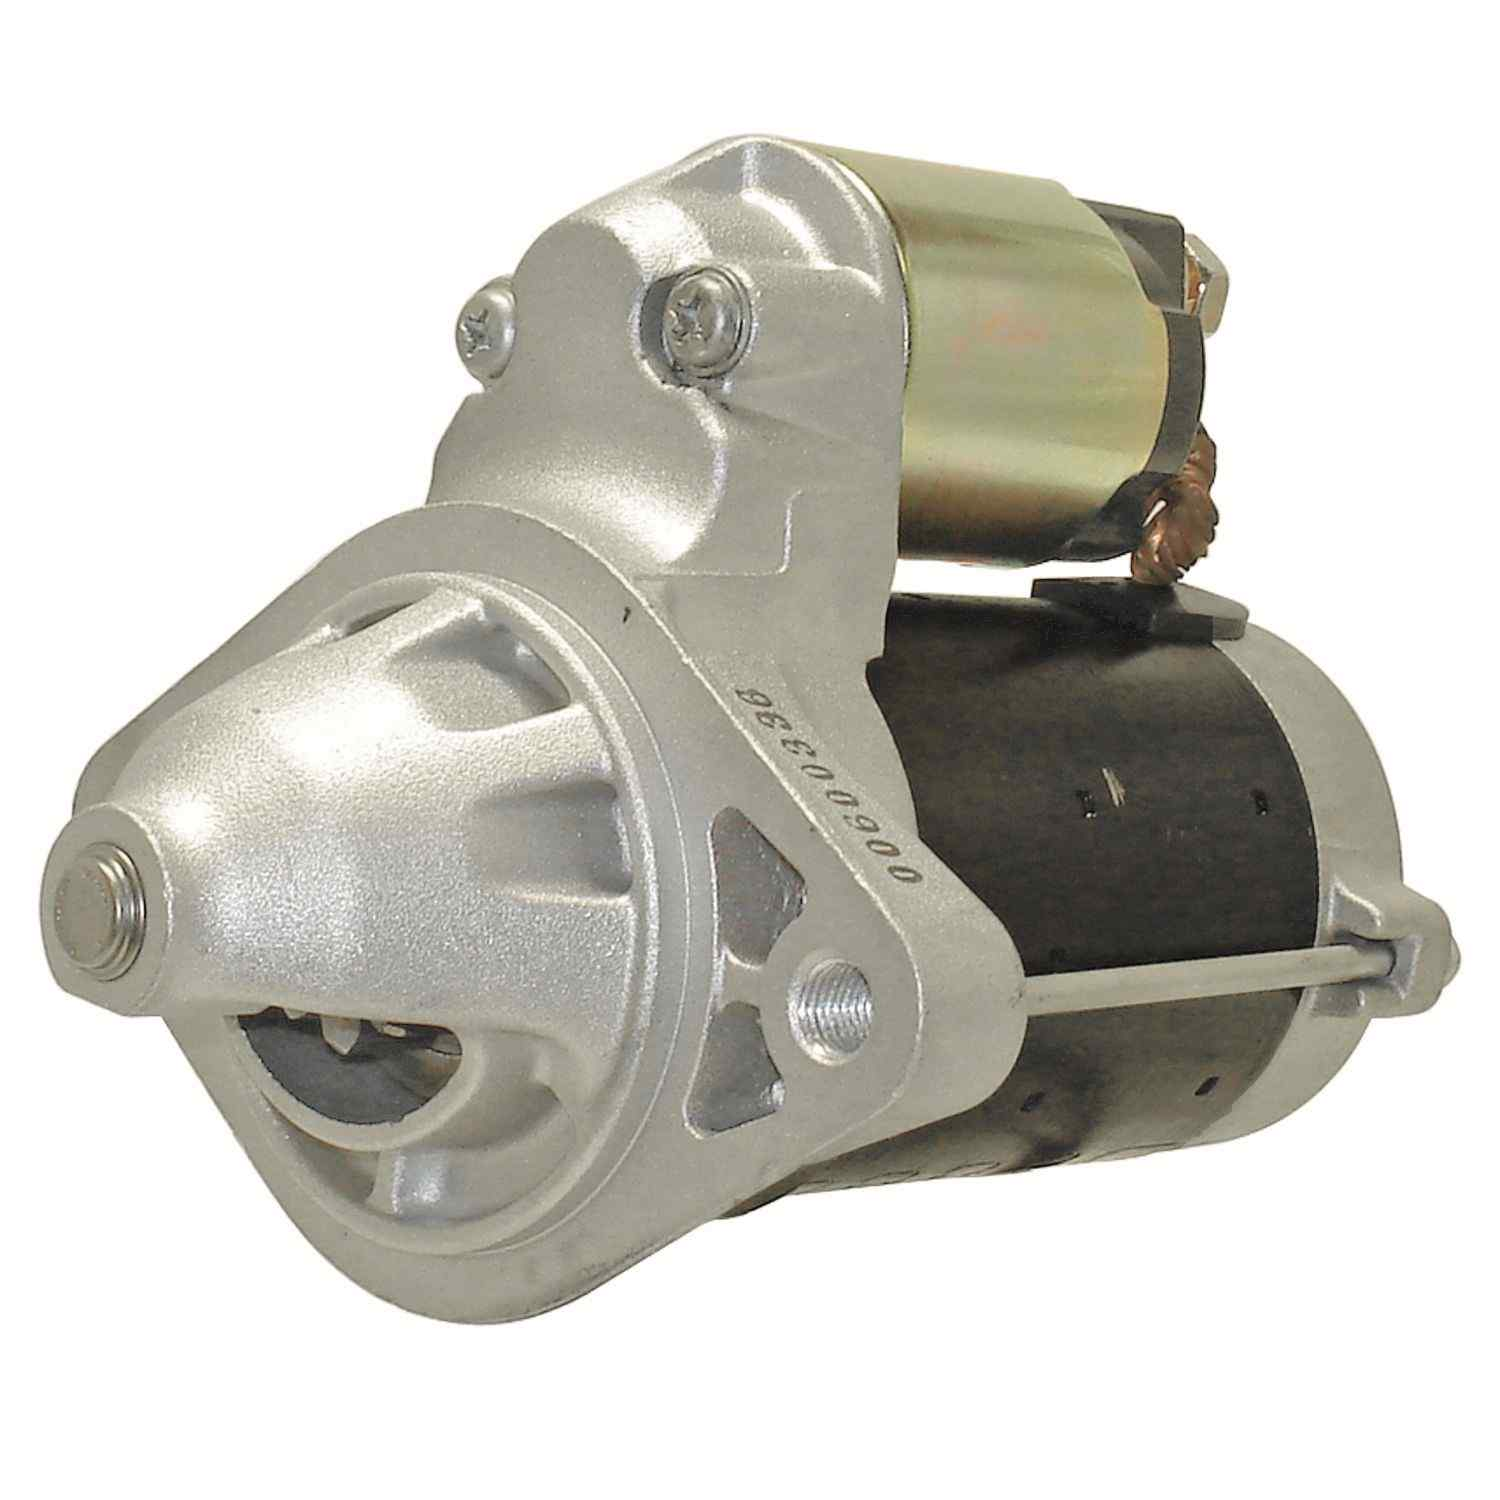 ACDELCO GOLD/PROFESSIONAL - Reman Starter Motor - DCC 336-1768A